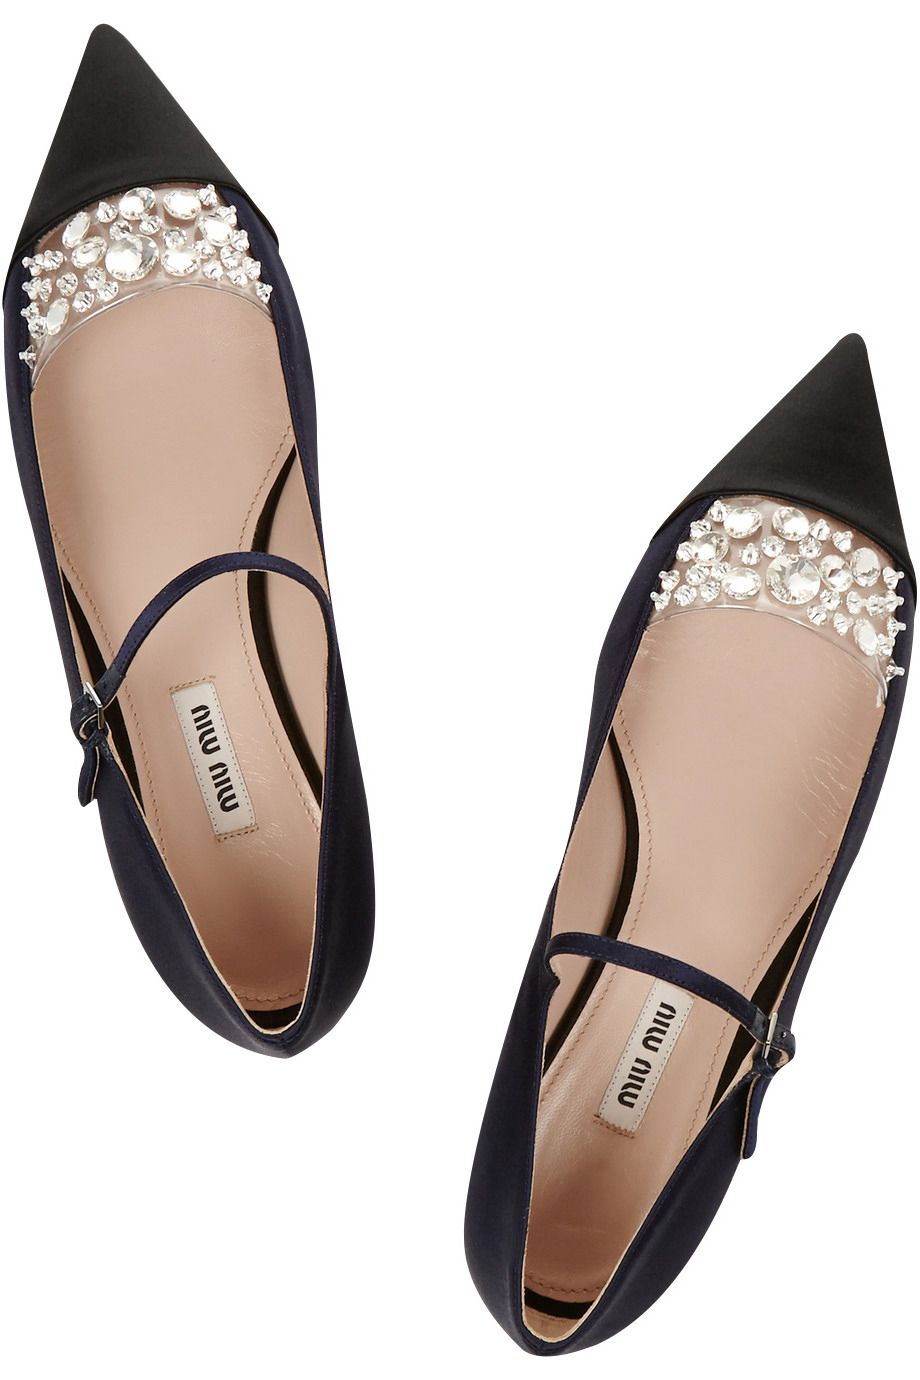 58c6201f8370 Miu Miu Crystal Embellished Satin Pointed Toe Flats.